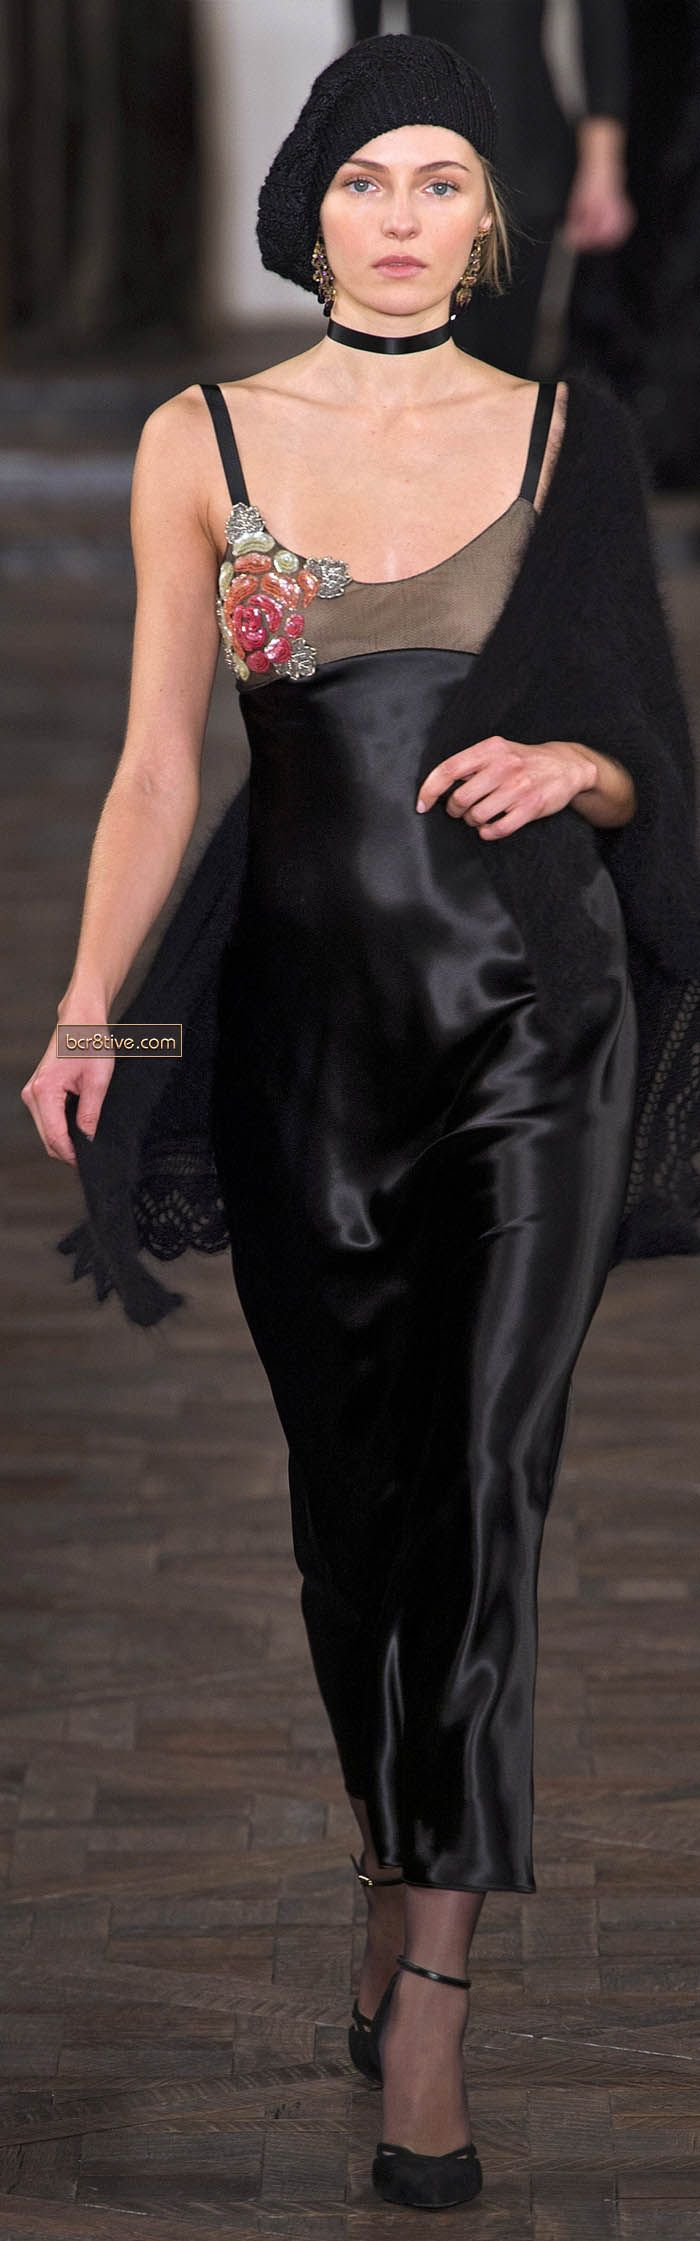 Ralph Lauren Fall Winter 2013 New York Fashion Week - this look reminds me of Faye Dunnaway in Bonnie and Clyde.